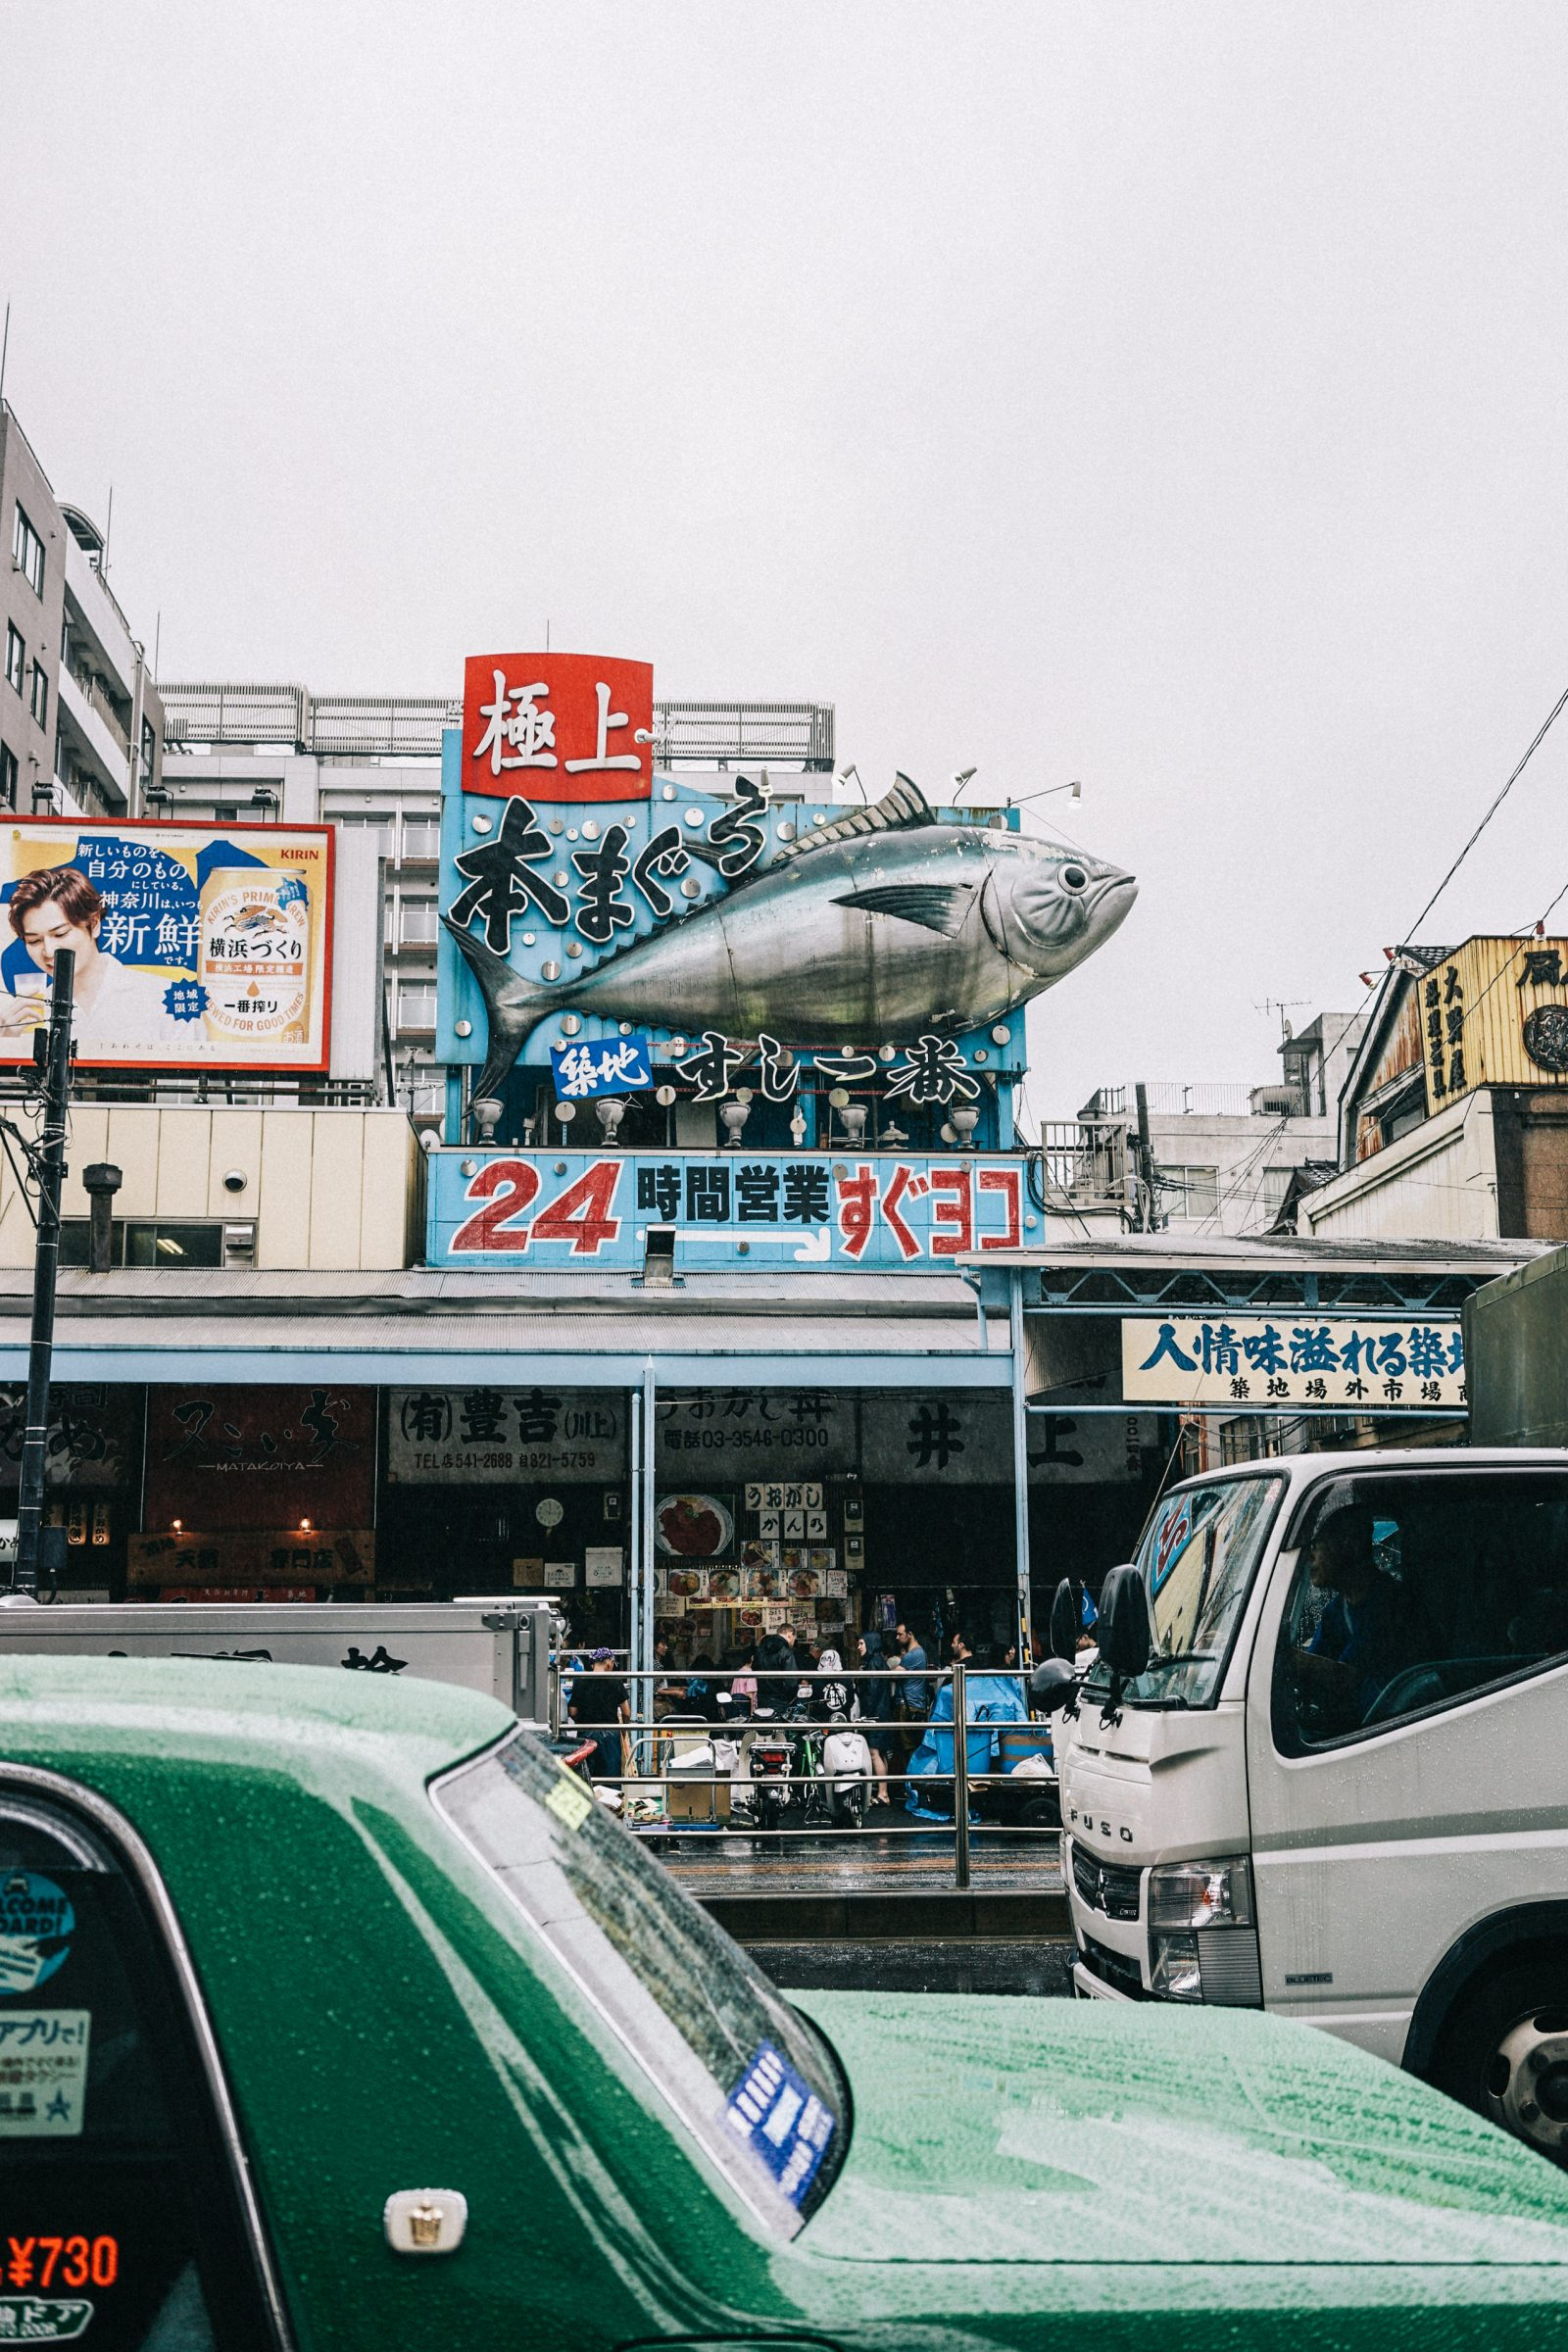 Tokyo_Travel_Guide-Fish_Market-Harajuku-Levis_Denim_Skirt-Off_The_Shoulders_Top-YSL_Sneakers-Outfit-Collage_Vintage-Street_Style-12